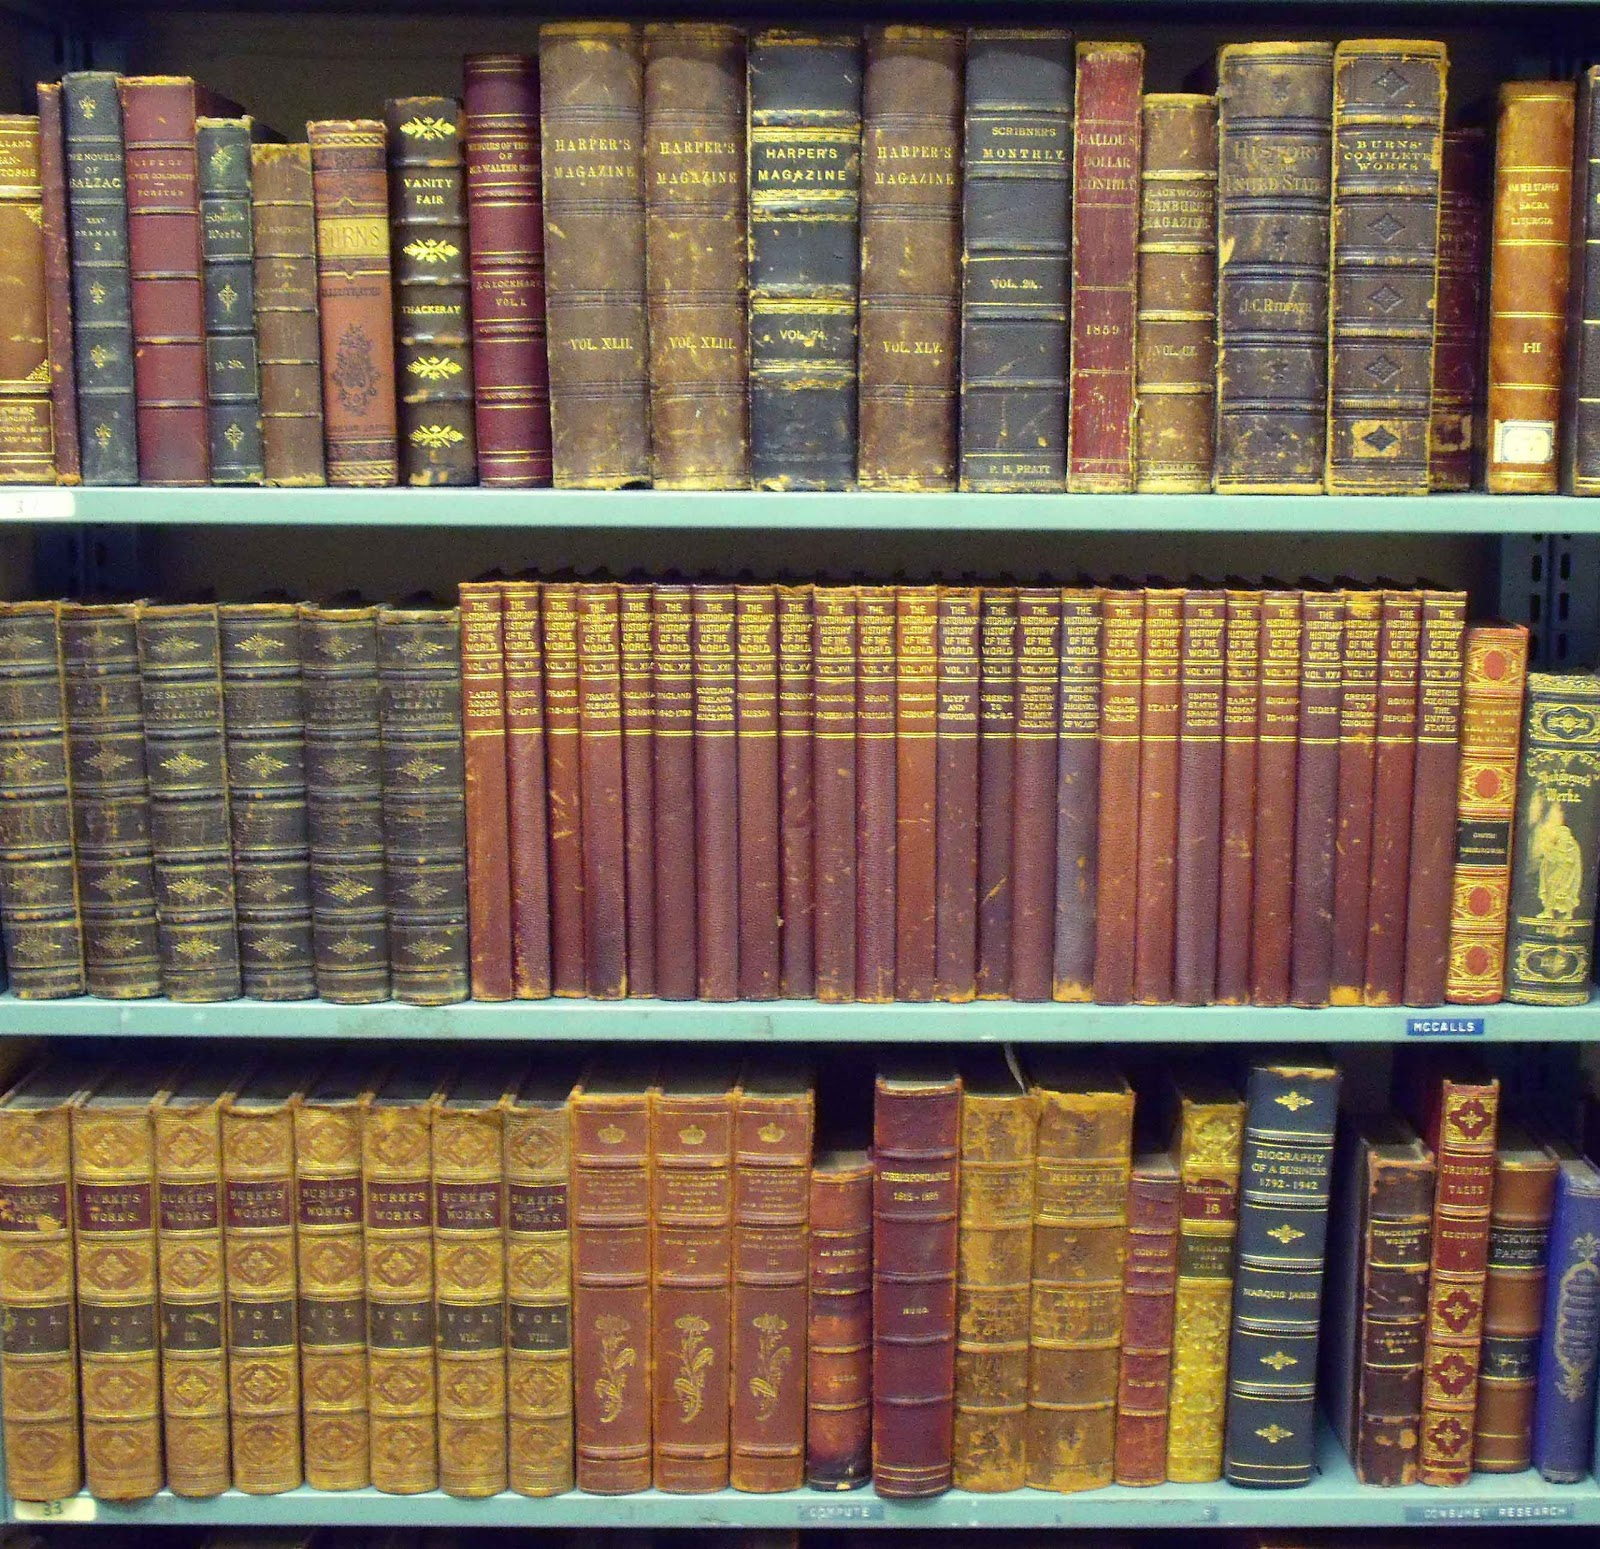 books library antique shelves text philosophy leather chess bindings literature reading sets shelf bookshelf january assignment sundries rationale selection used